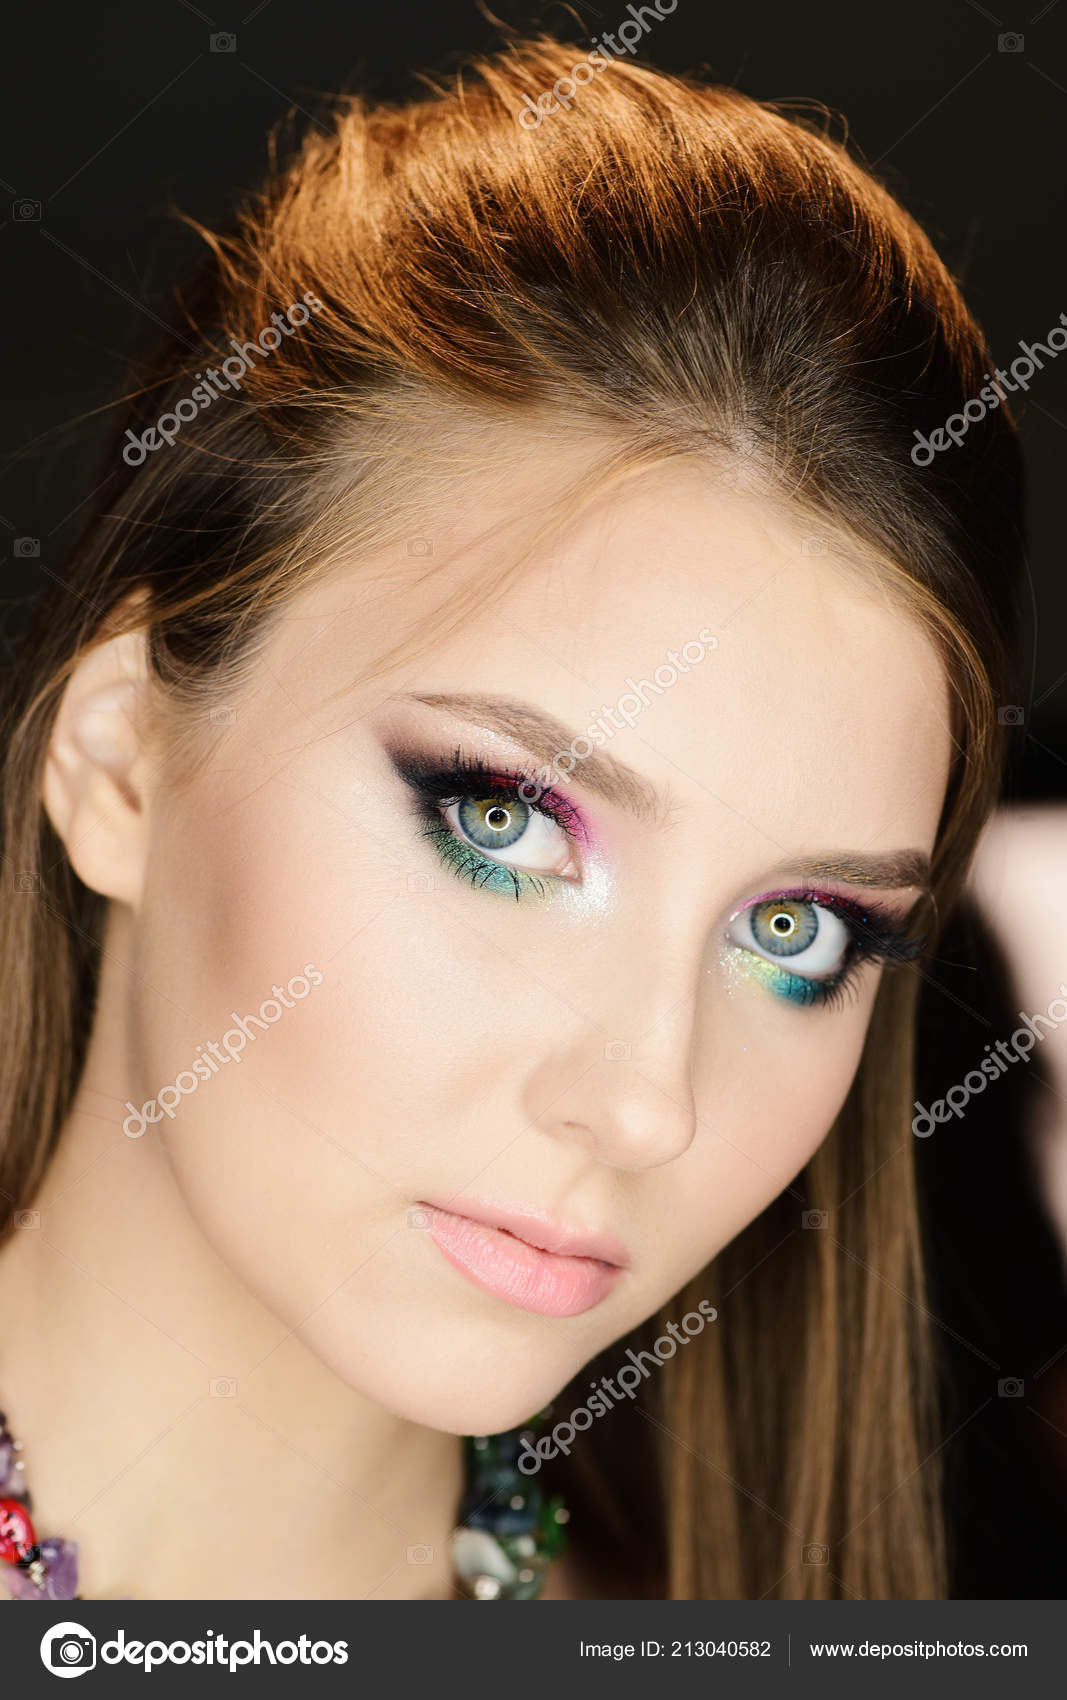 8ac10112a63 Girl with colourful makeup and long hair, selective focus. Lady with  seductive look and serious face on black background. Model wearing pink and  green ...